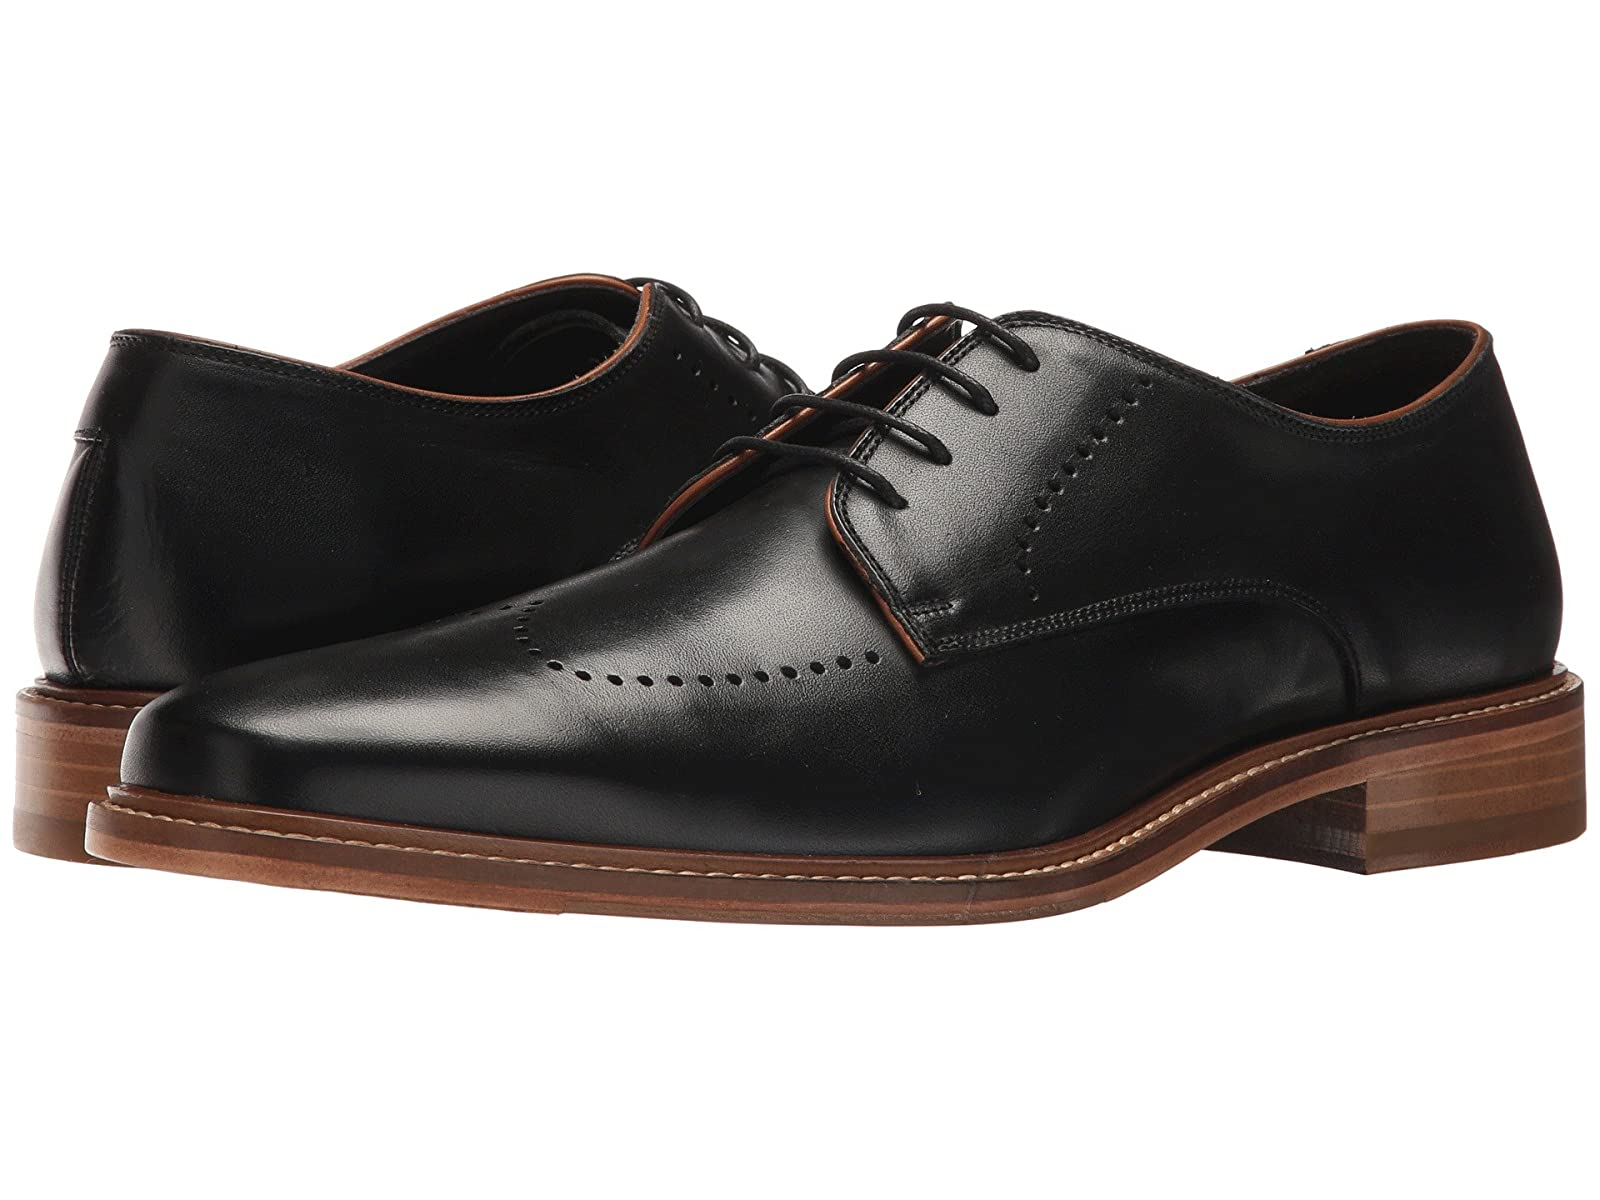 Bruno Magli JohnCheap and distinctive eye-catching shoes